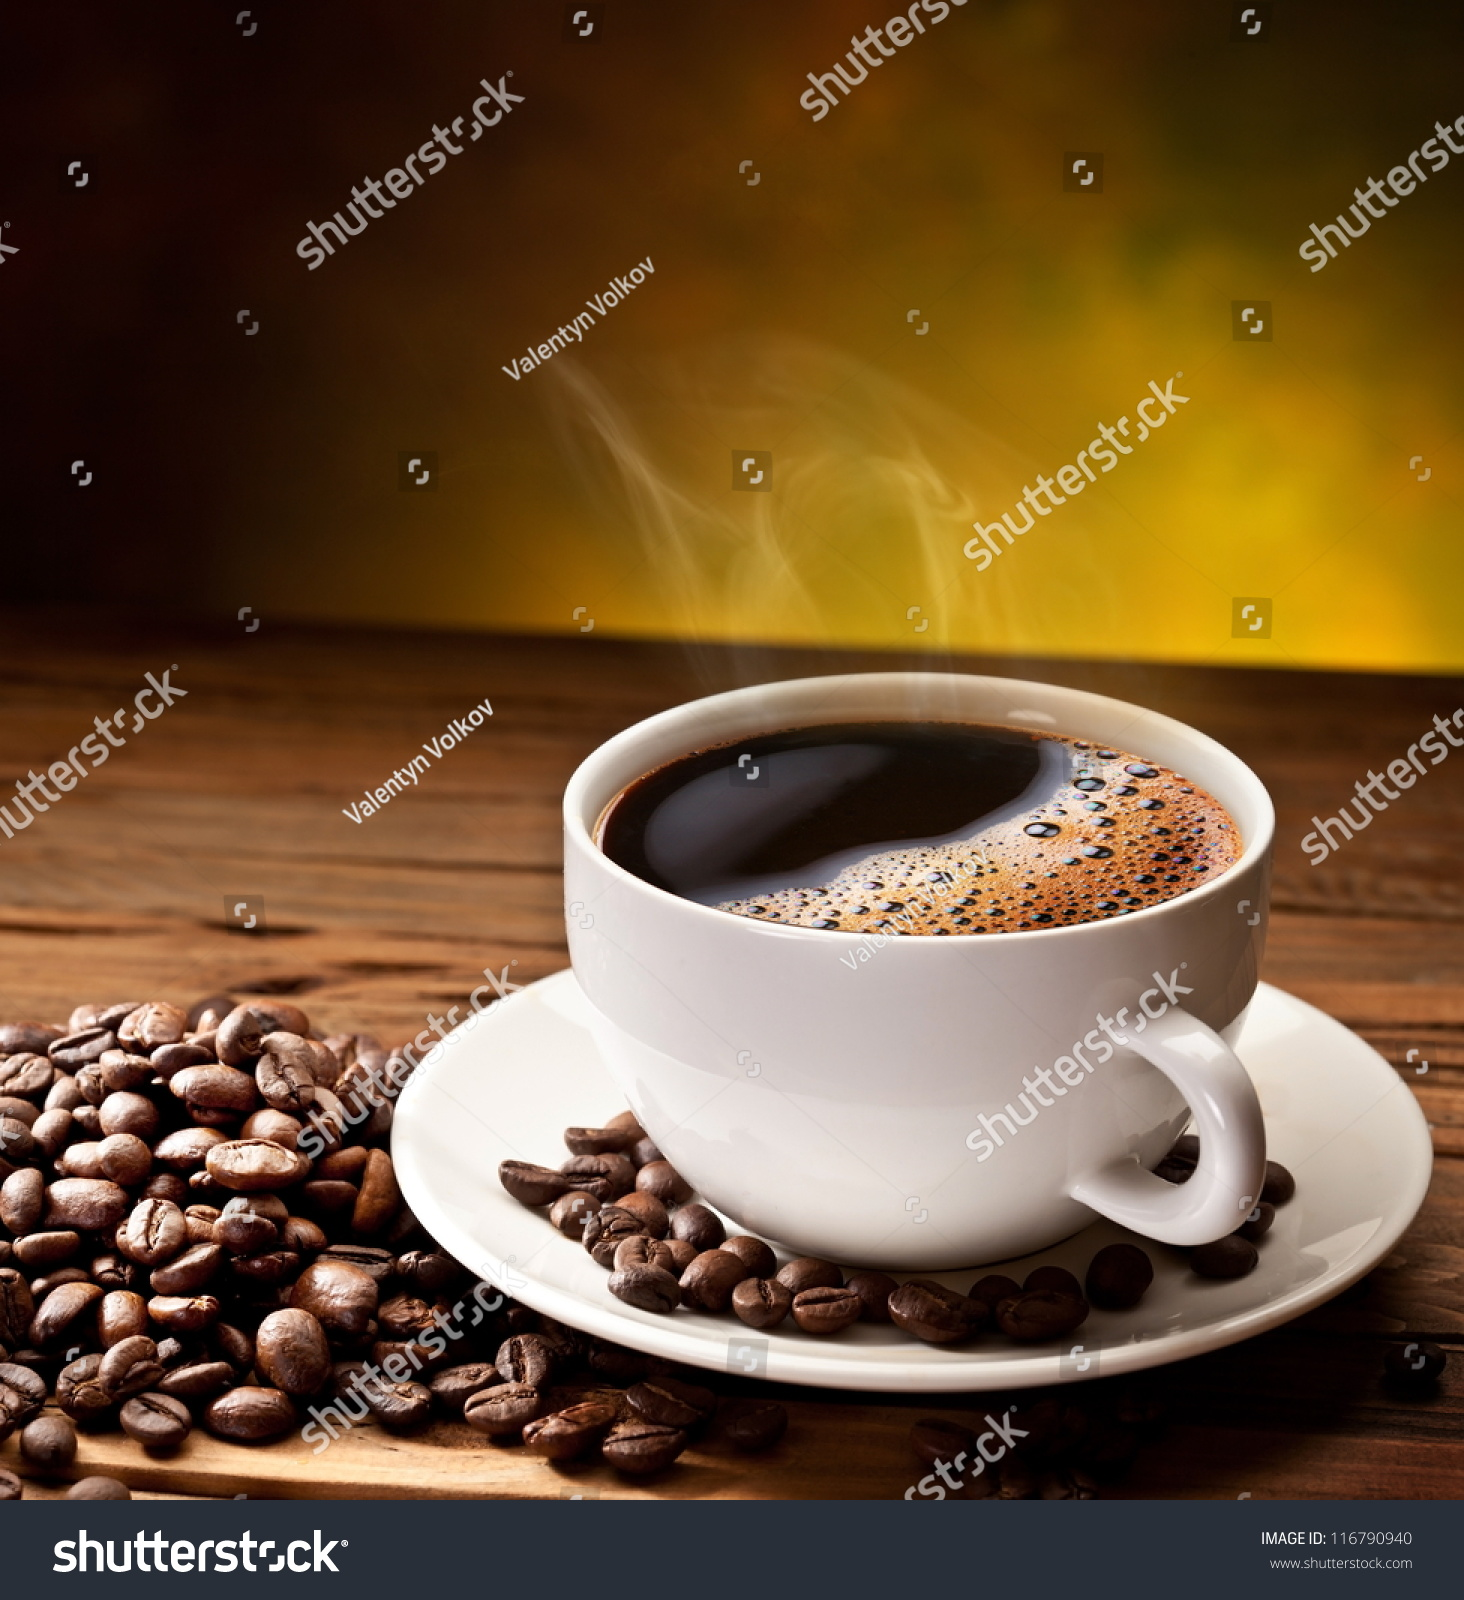 Coffee cup saucer on wooden table stock photo 116790940 shutterstock coffee cup and saucer on a wooden table dark background geotapseo Gallery